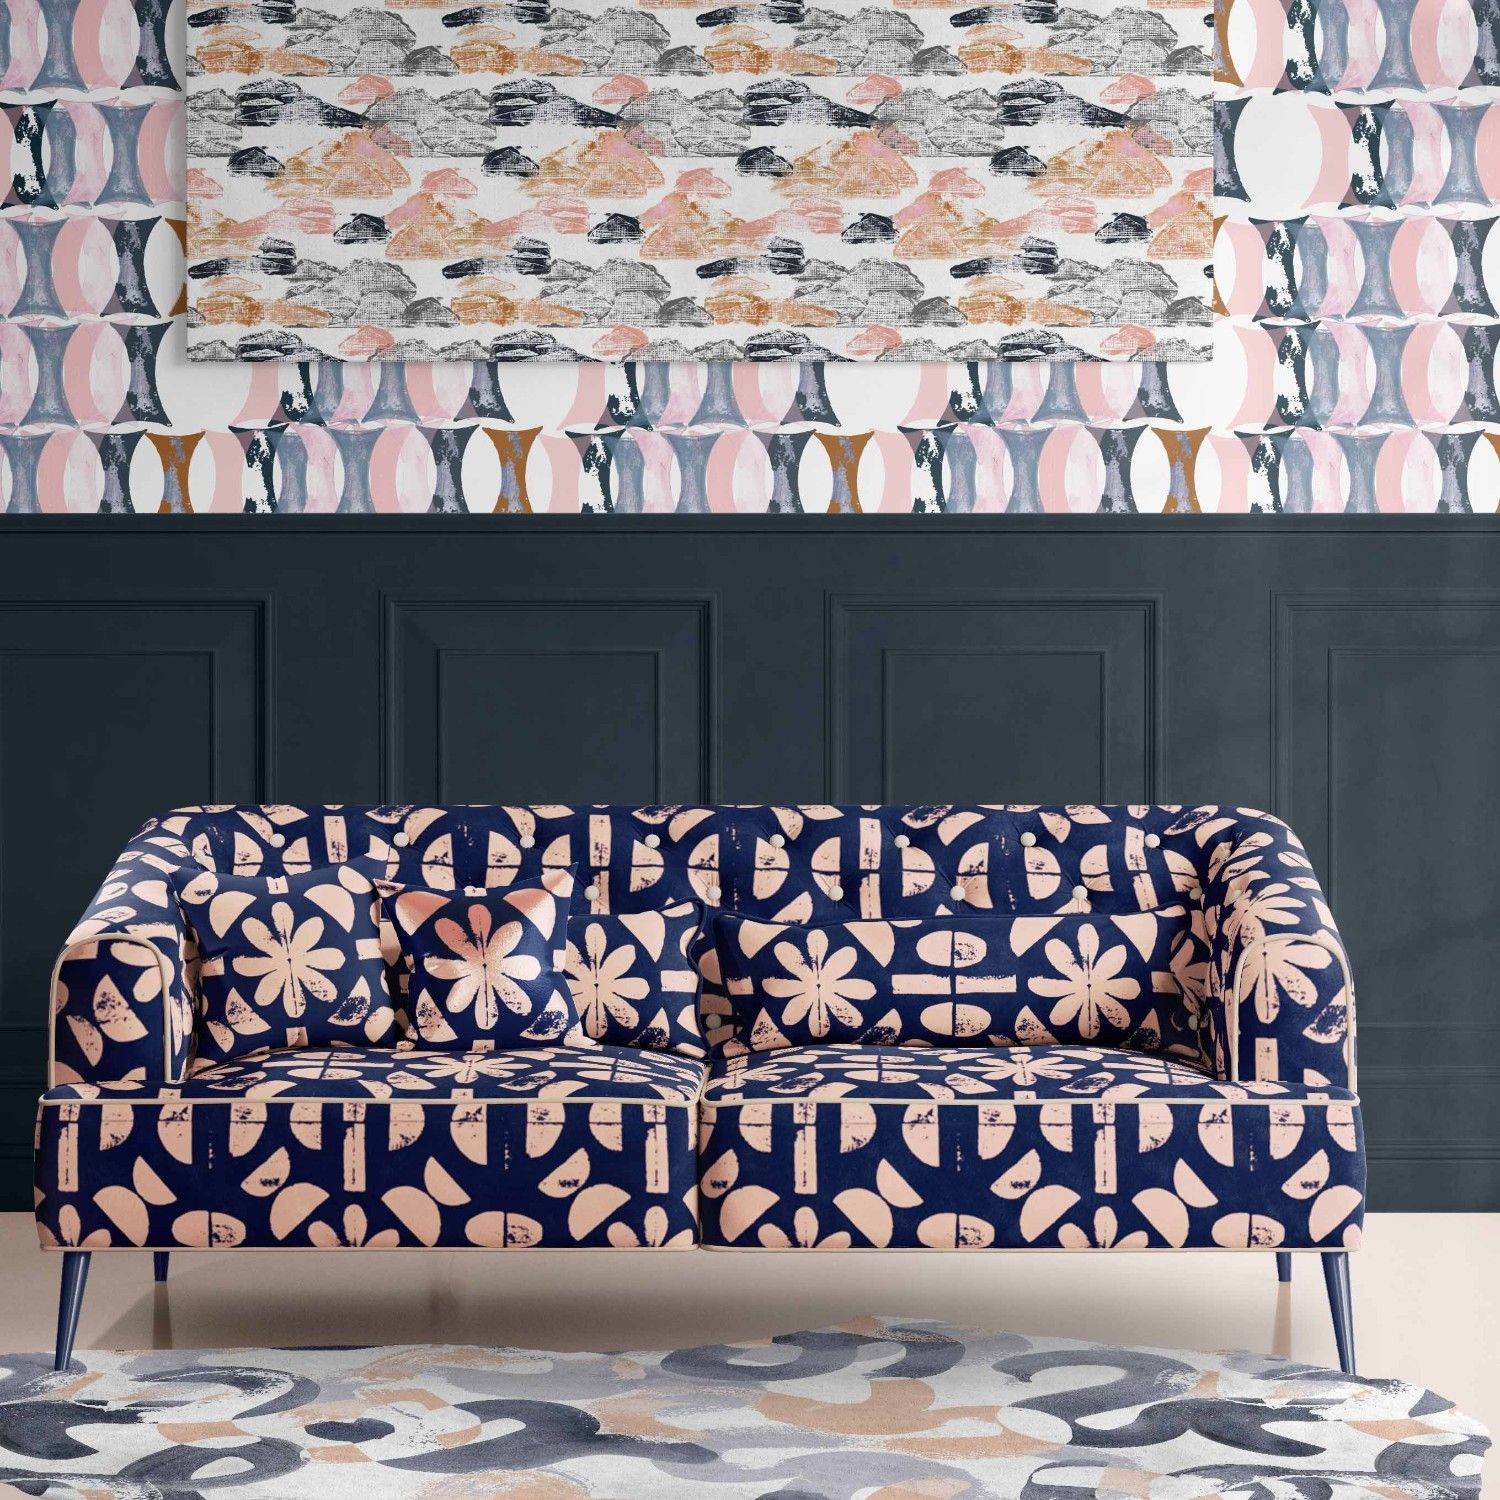 artisanal concept rug couch wallpaper artwork